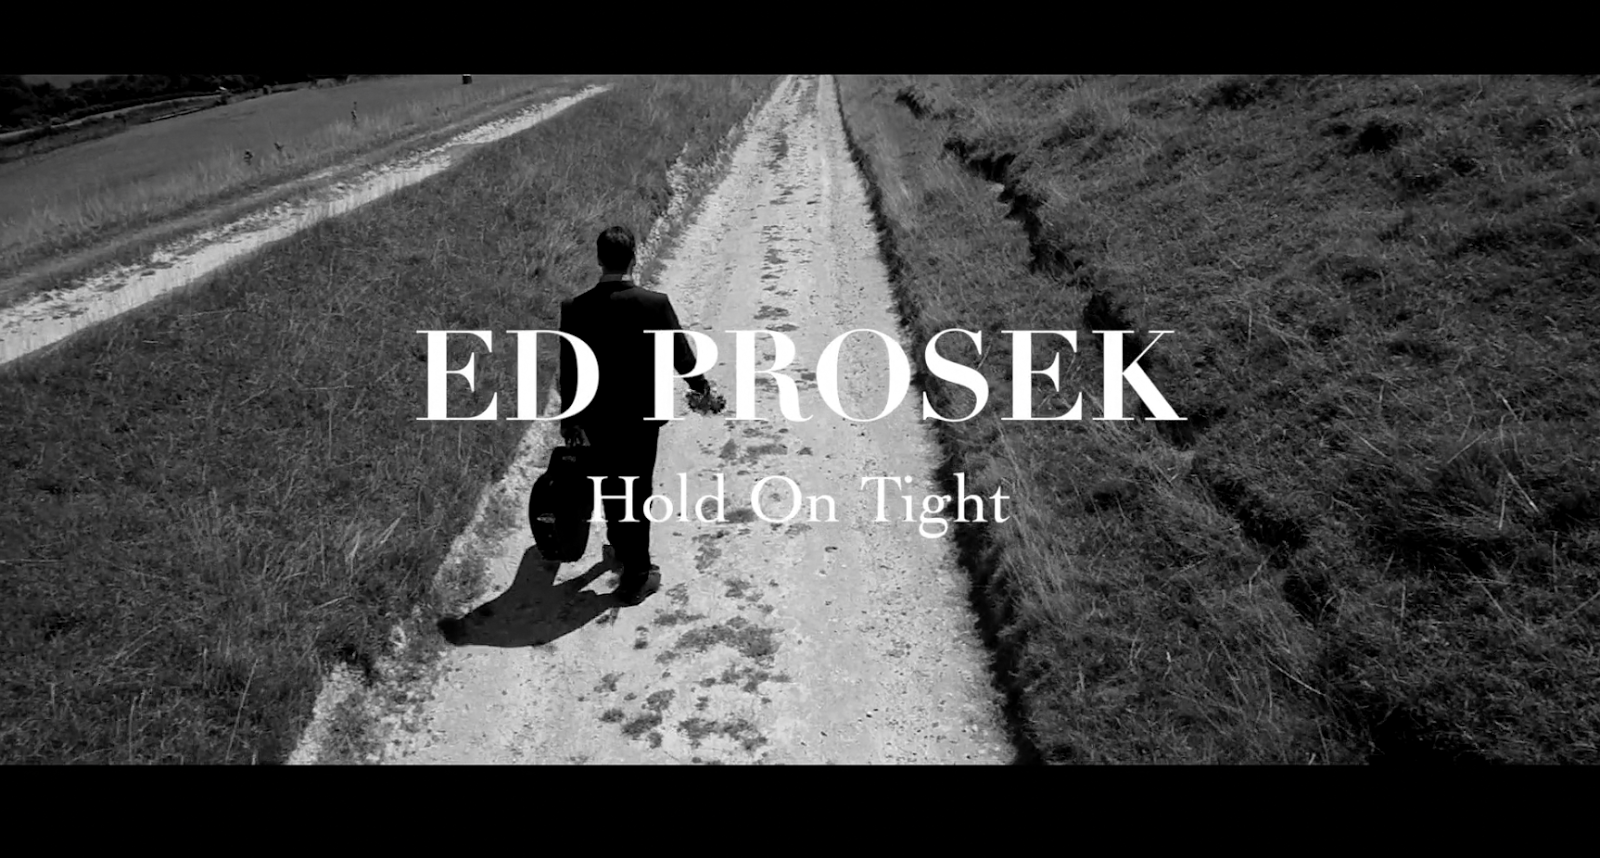 Ed Prosek Video for Hold On Tight